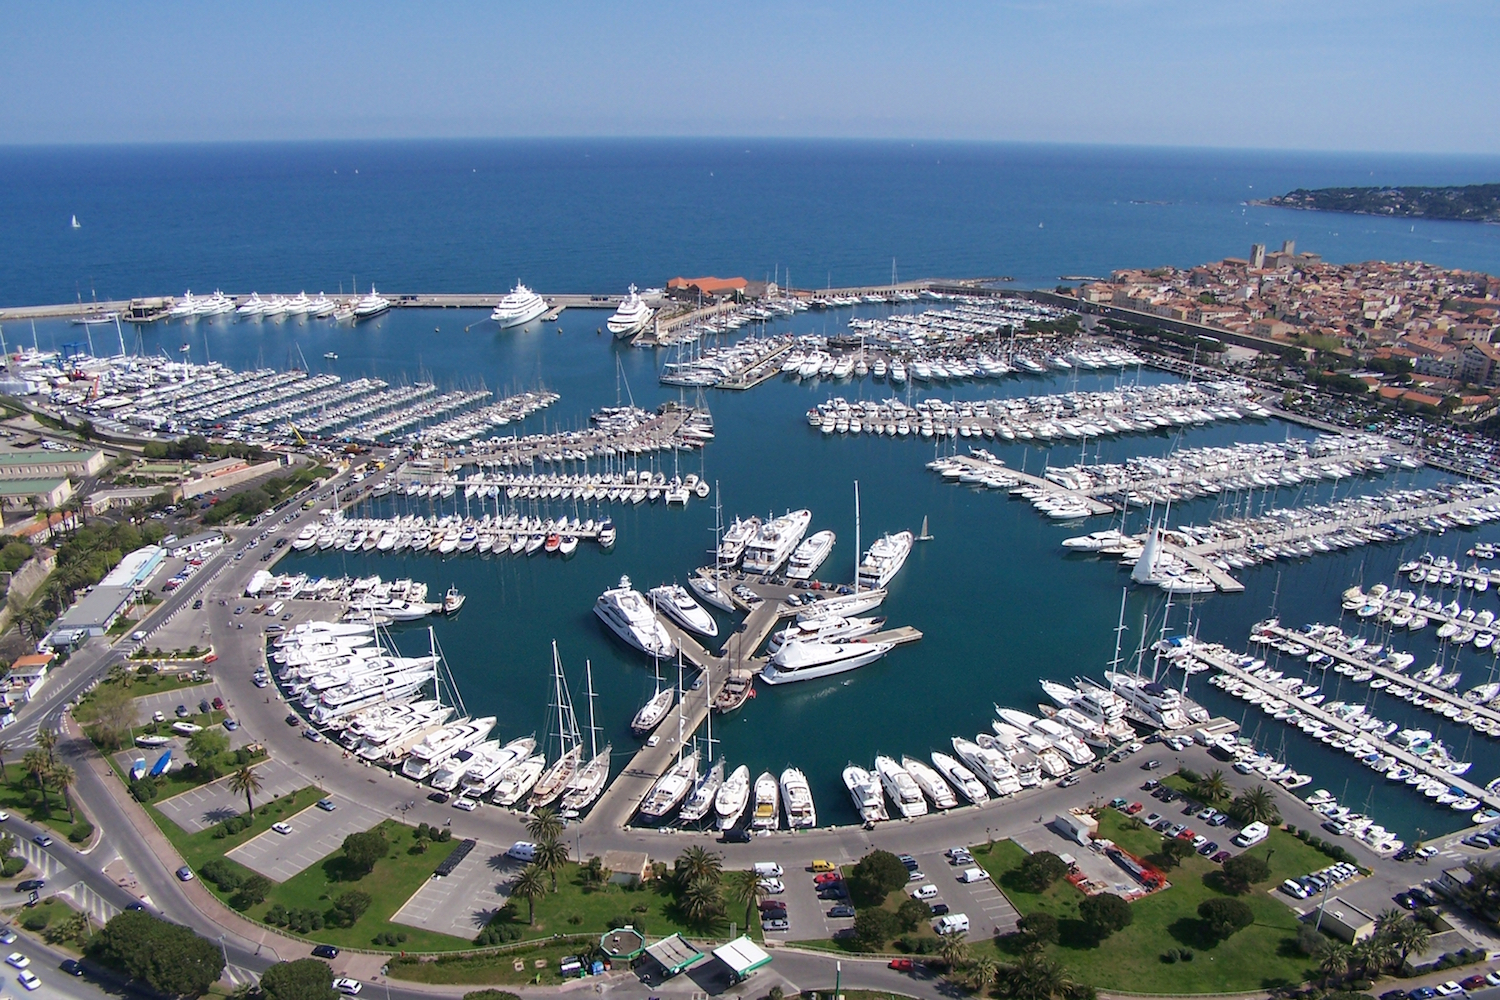 Port Vauban in Antibes welcomes Antibes Celebrates Yachting